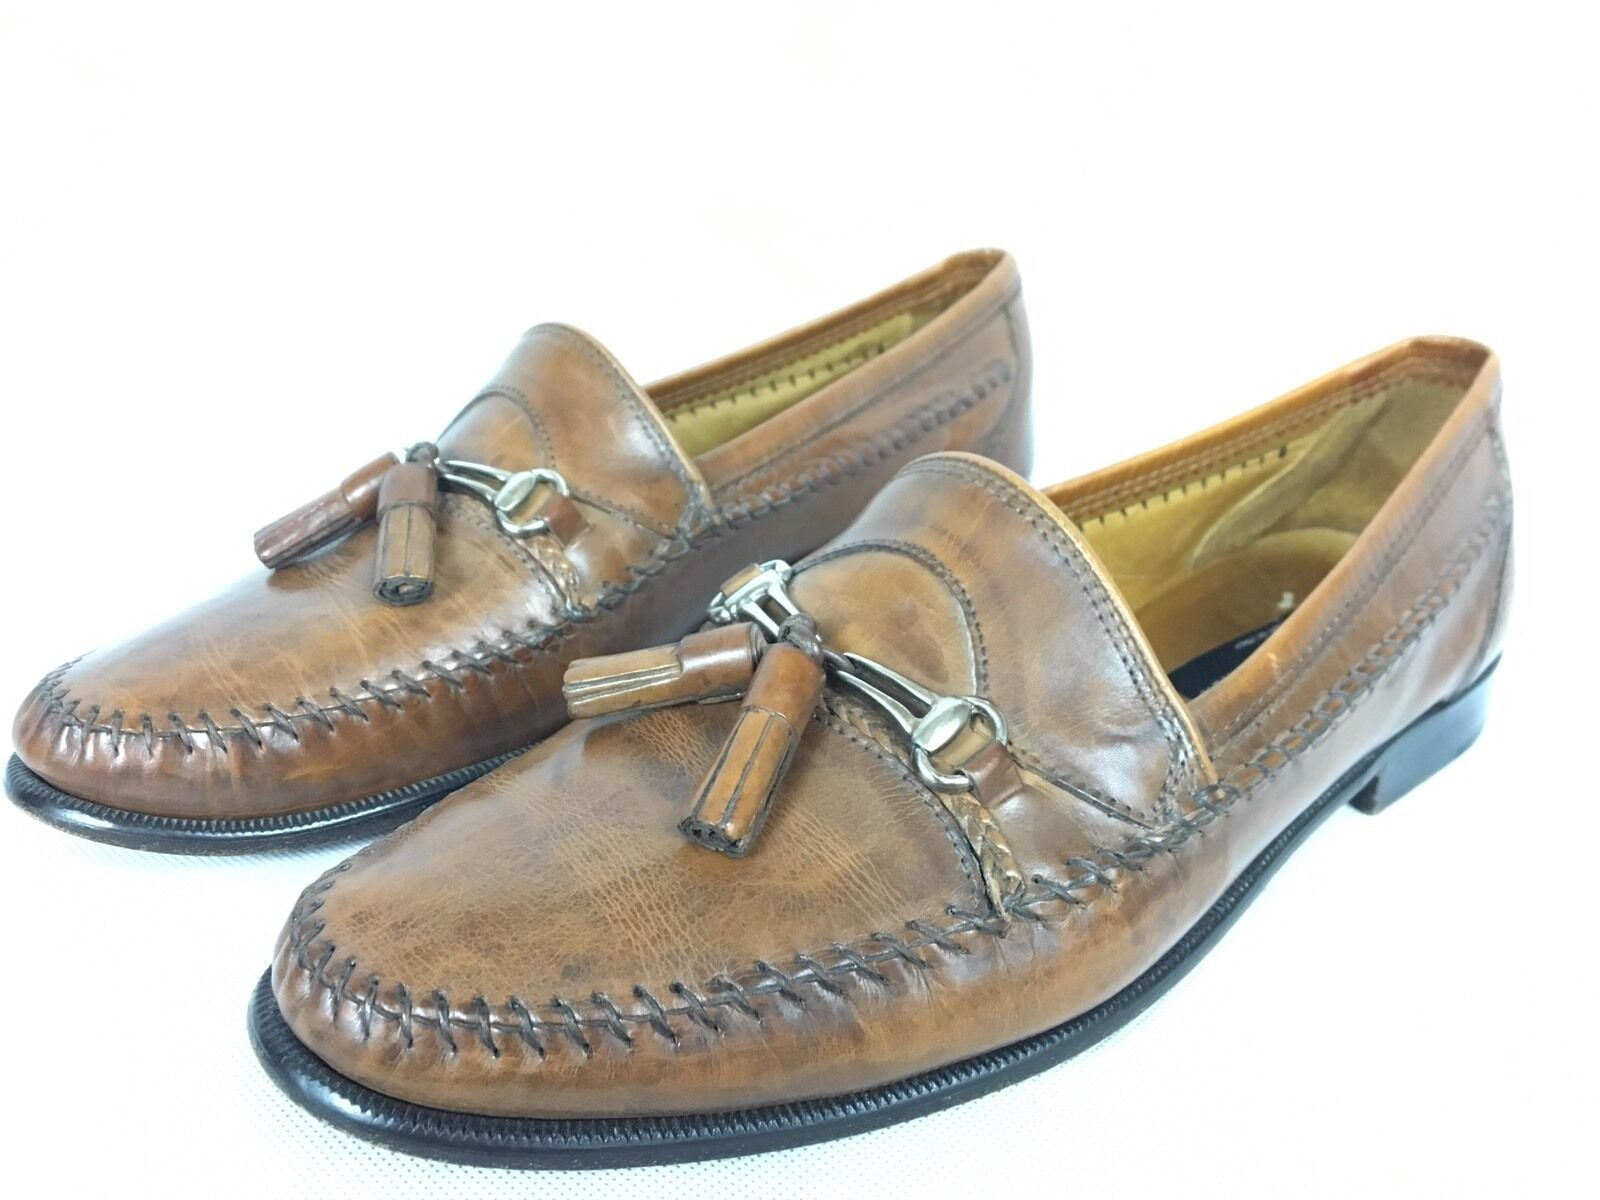 Stamati Mastroianni Brown Pelle Loafers Handmade In Italy 10 Shoes W/tassels